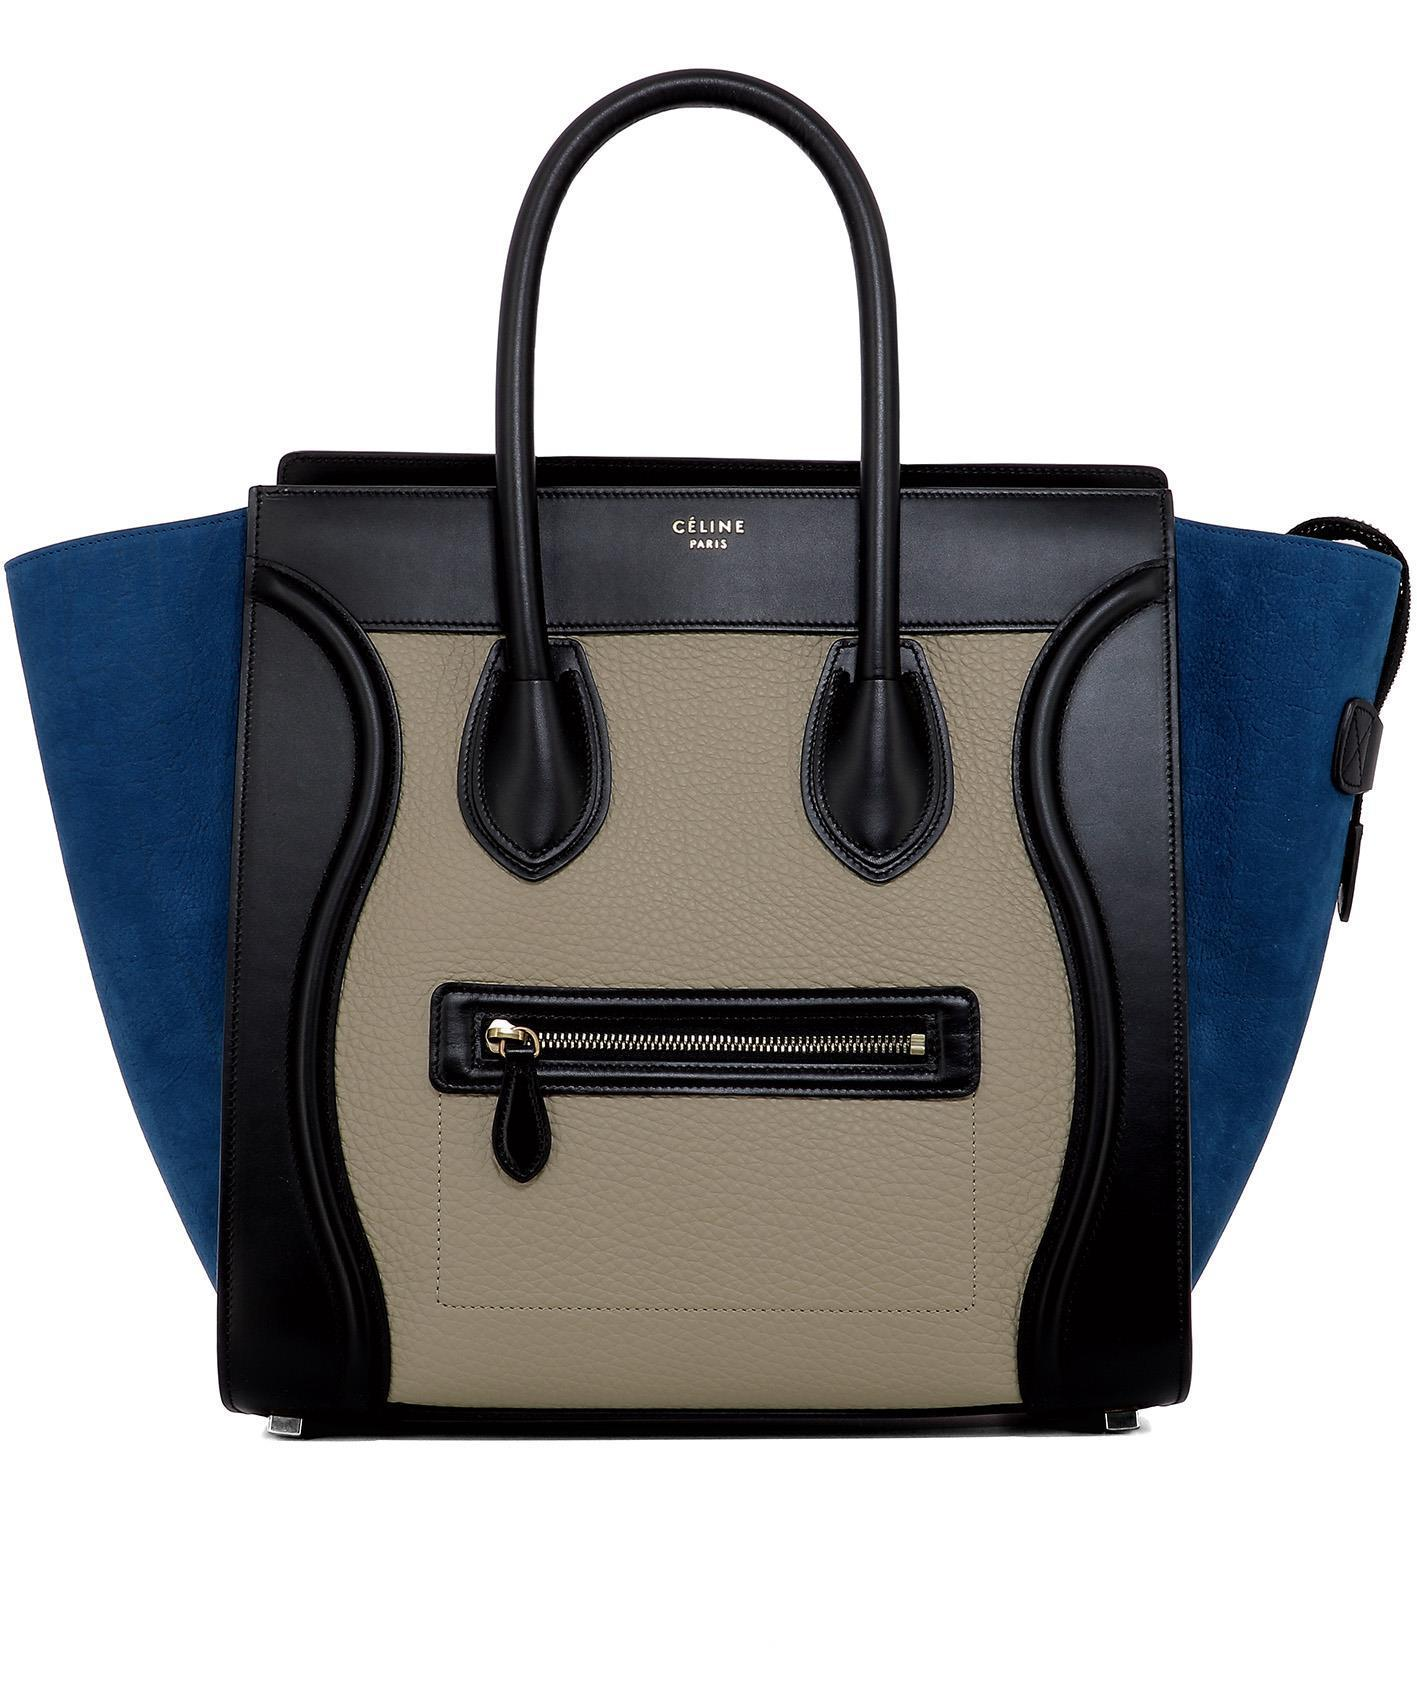 7b905221a04d Céline Luggage Tote Bag in Black - Lyst